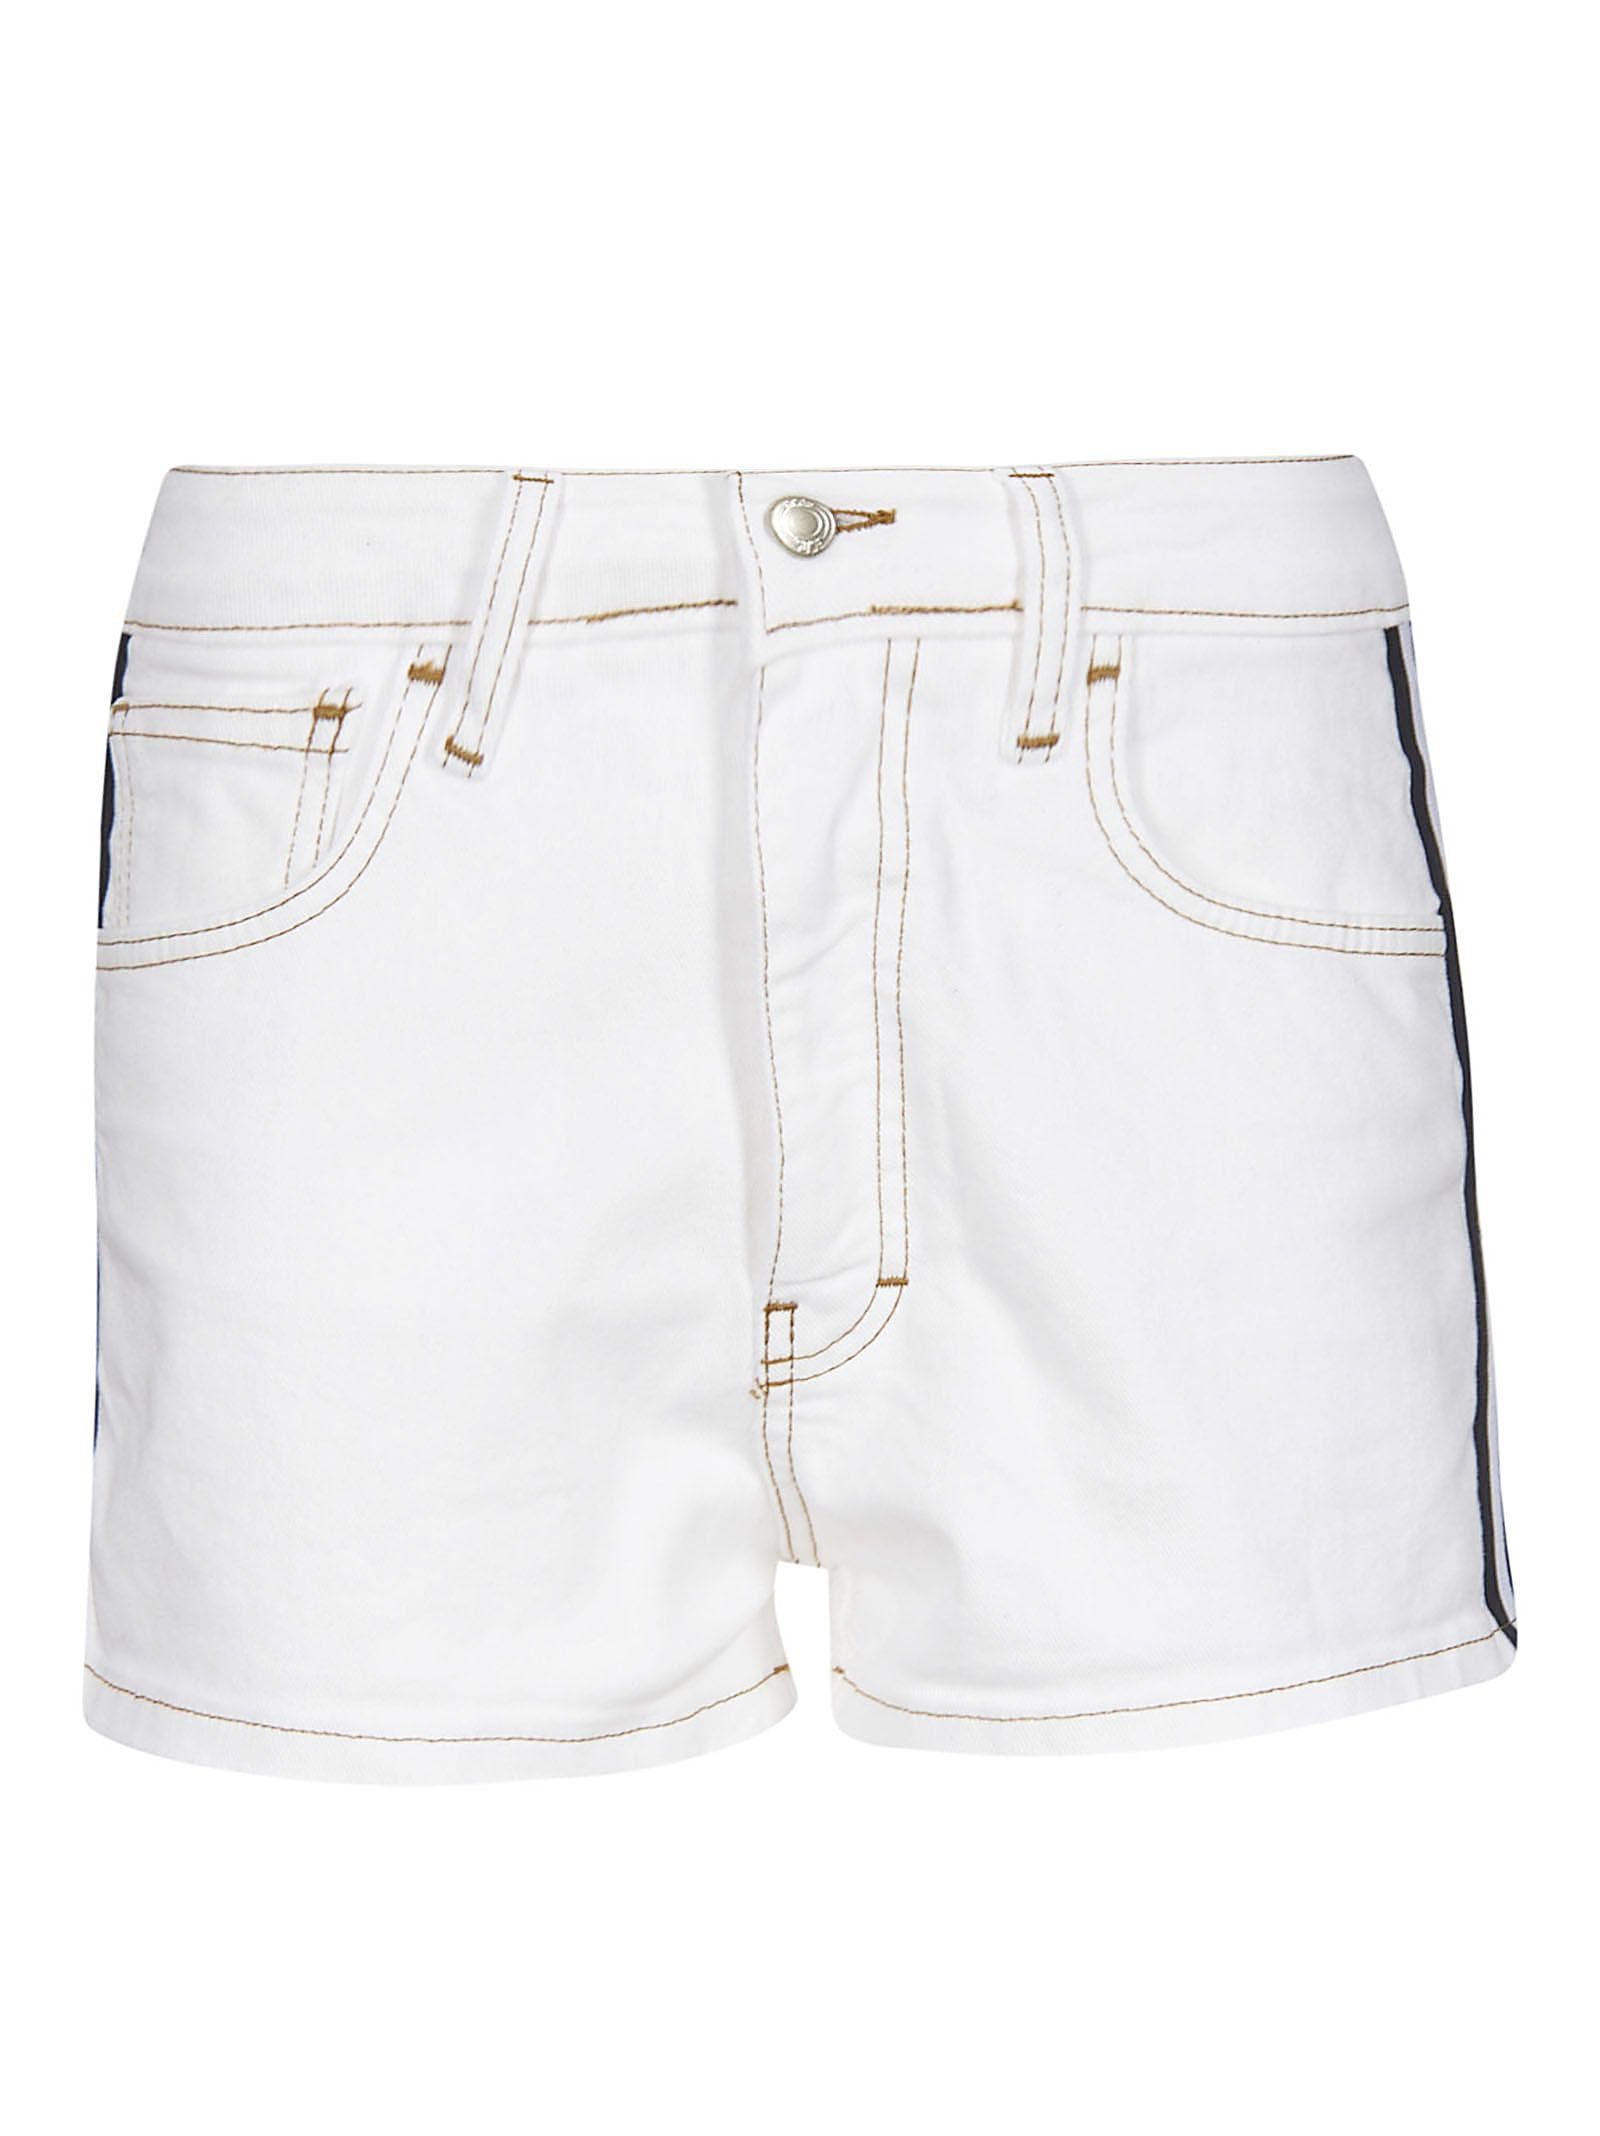 GCDS High Waisted Shorts